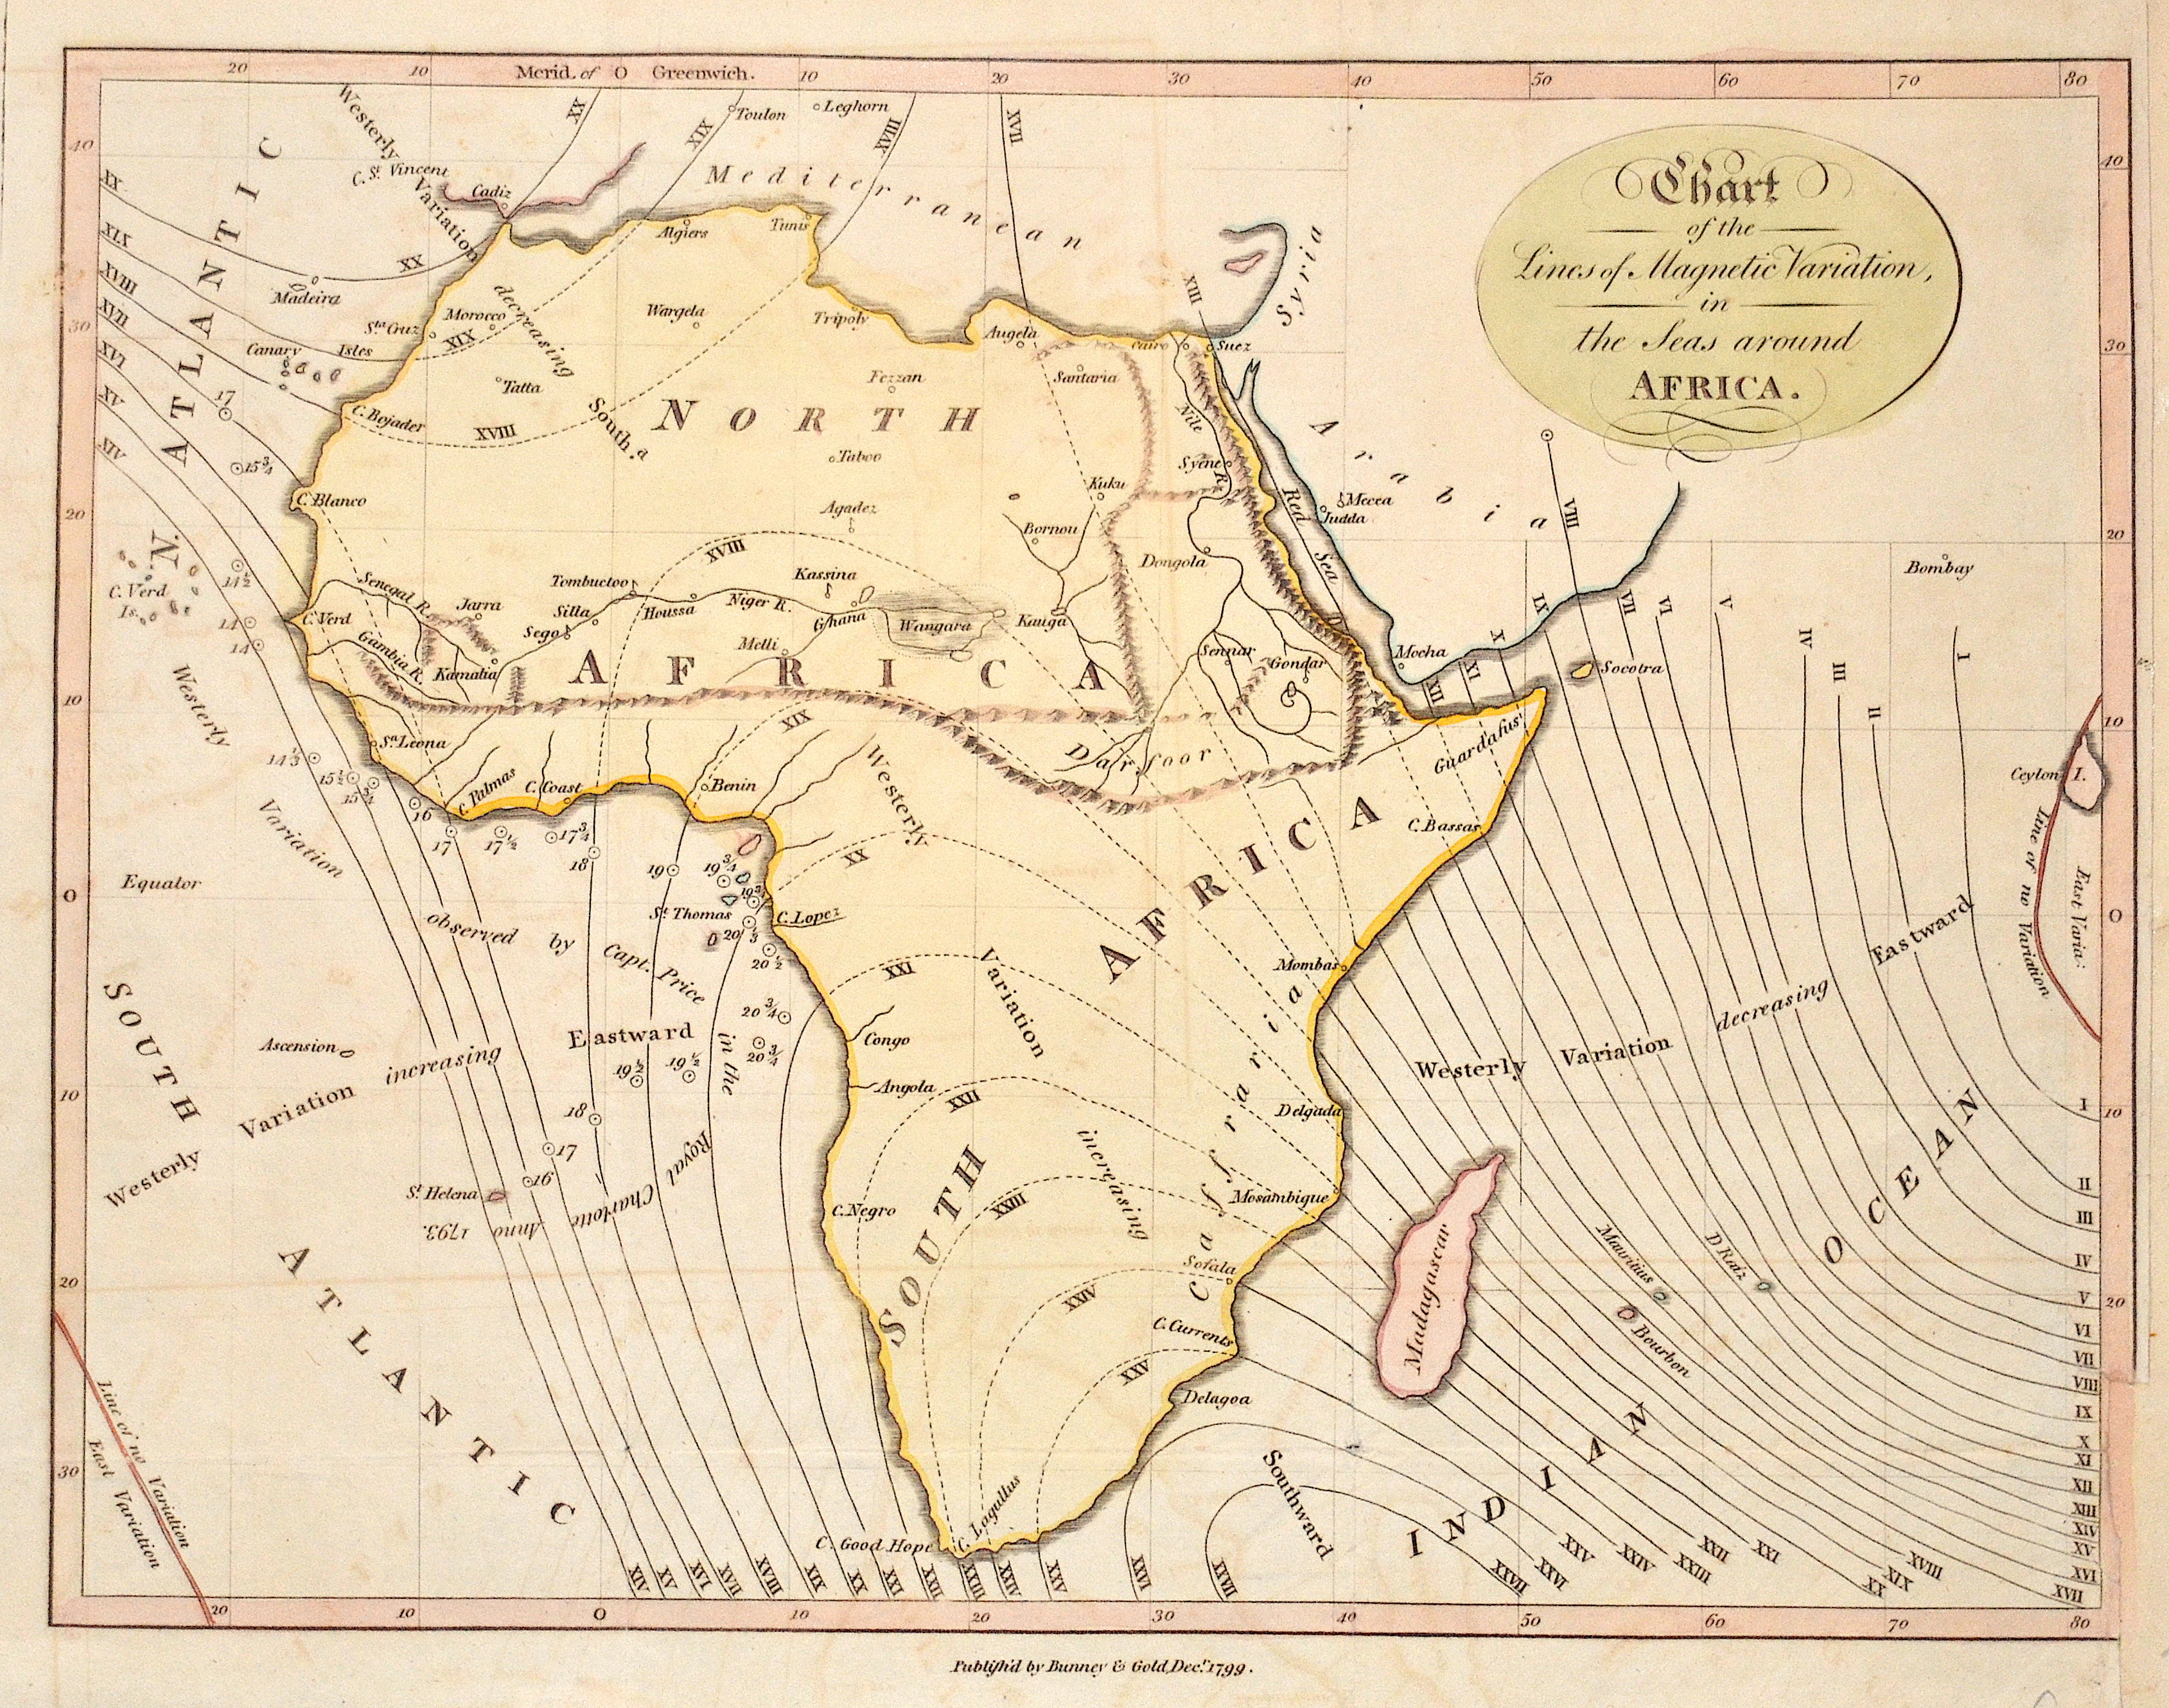 Bunney & Gold  Chart of the Lines of Magnetic Variation, in the Seas around Africa.